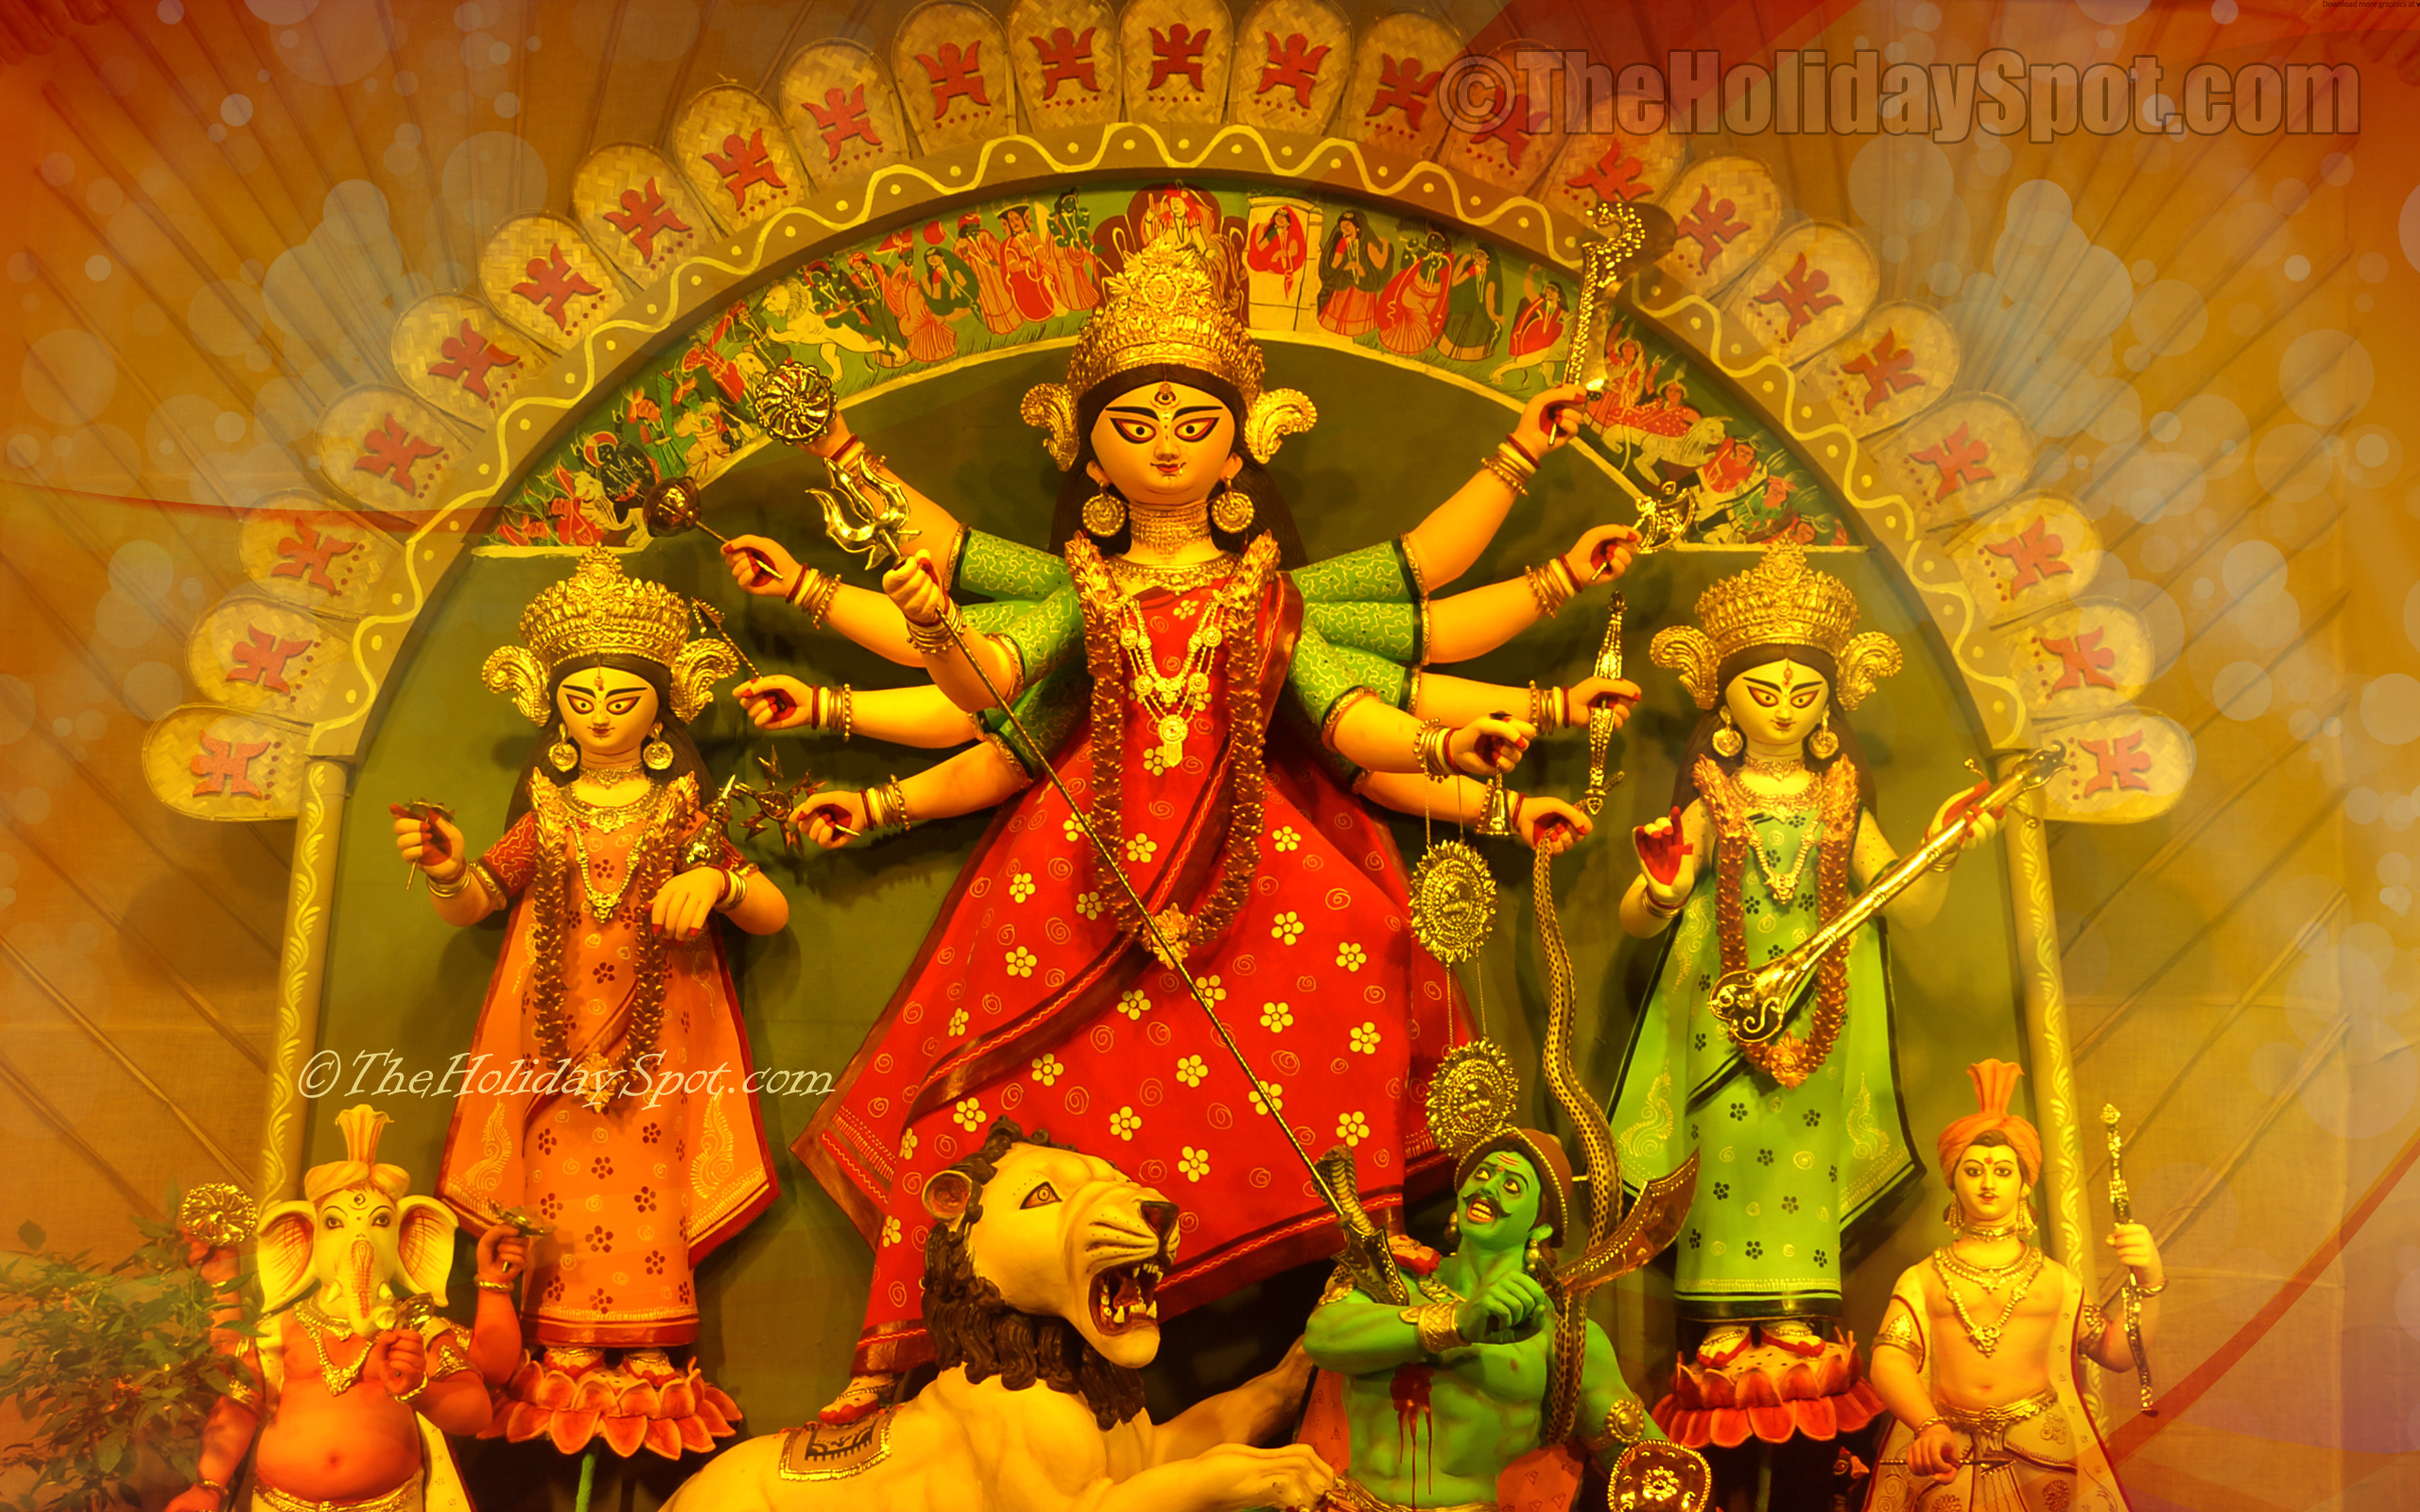 Durga puja wallpapers its free download now Durga Puja Images